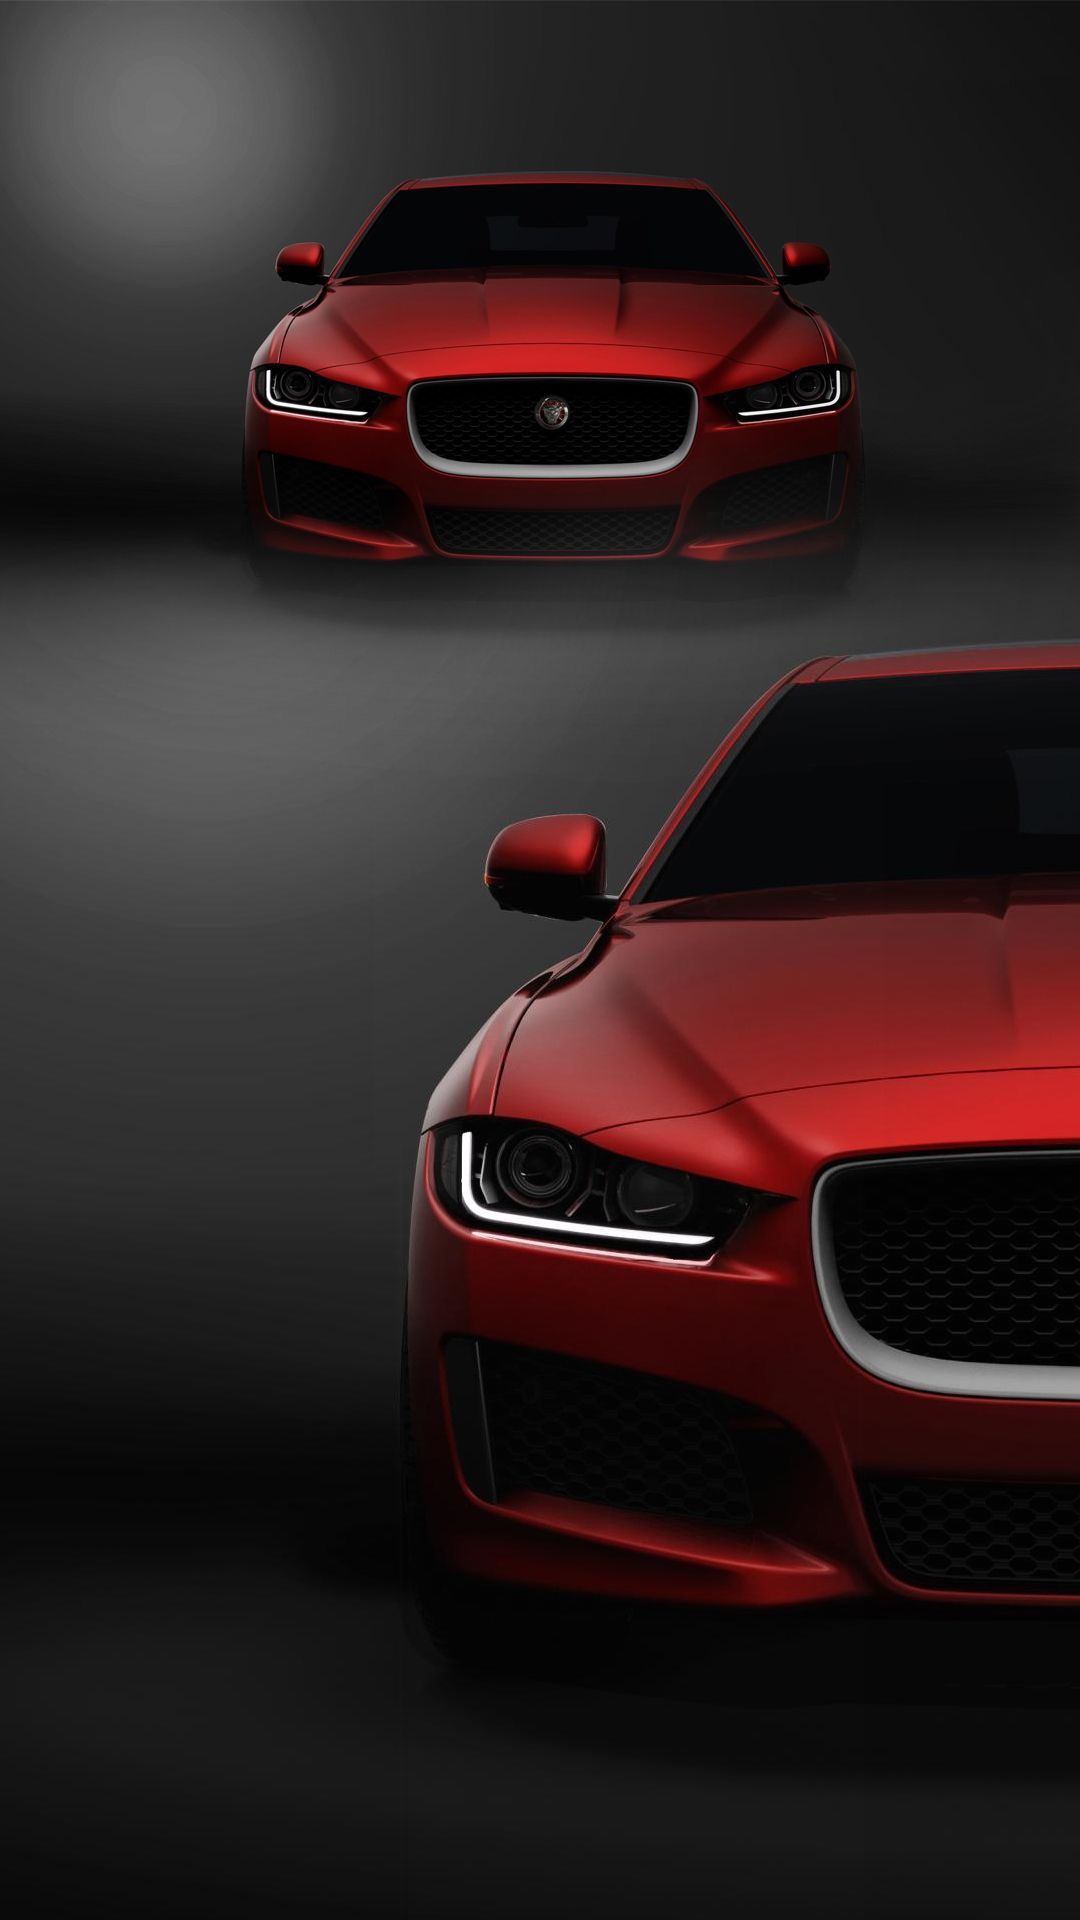 Hd Car Wallpaper For Android Mobile Hd Wallpapers For Free Car Iphone Wallpaper Mobile Wallpaper Android Car Wallpaper For Mobile